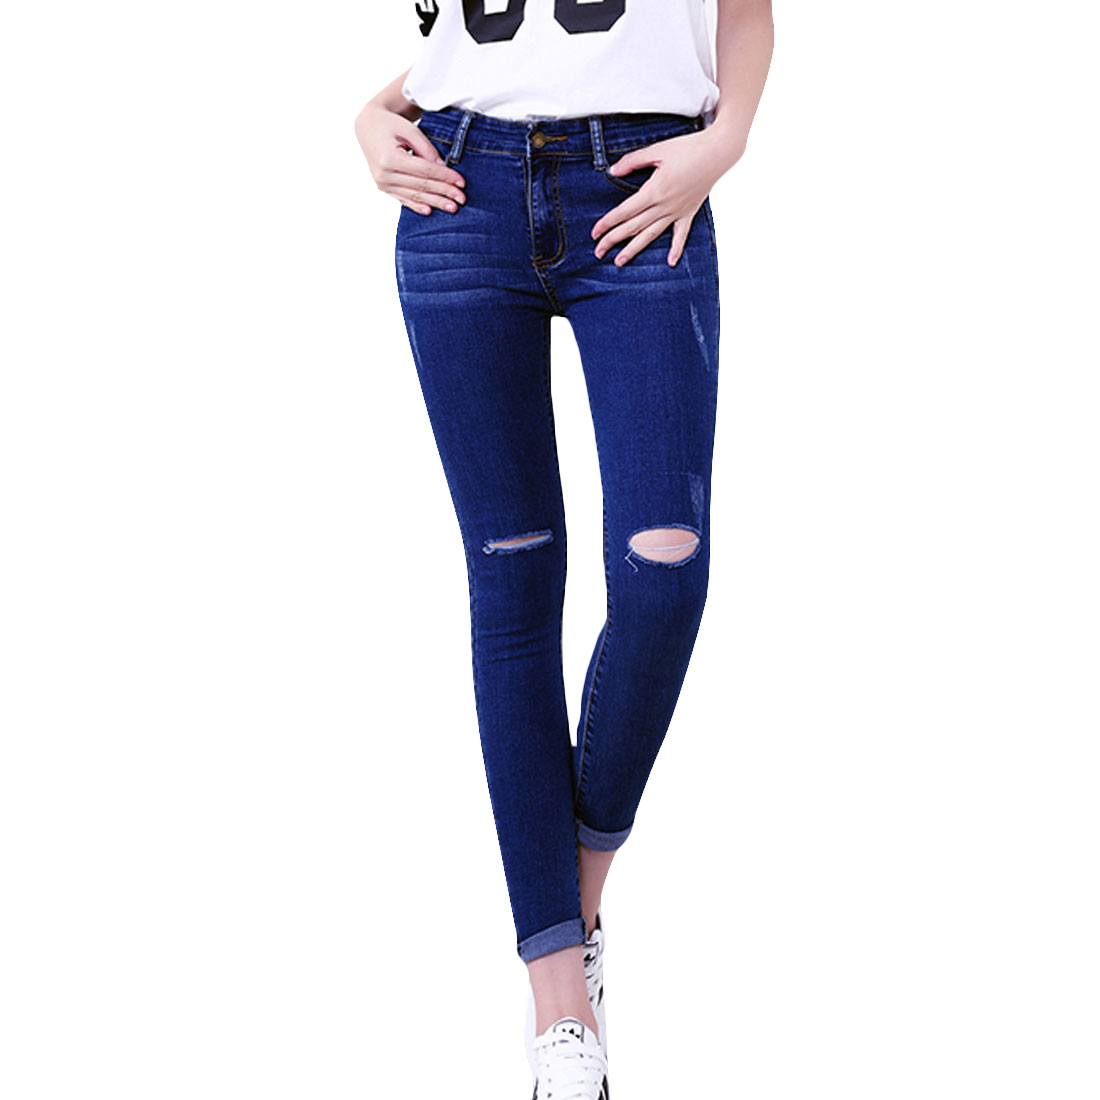 Pants Women Denim Pencil Pants 2017 Skinny Jeans Large Size Women Hole Stretch High Waist Jeans European and American TrousersОдежда и ак�е��уары<br><br><br>Aliexpress